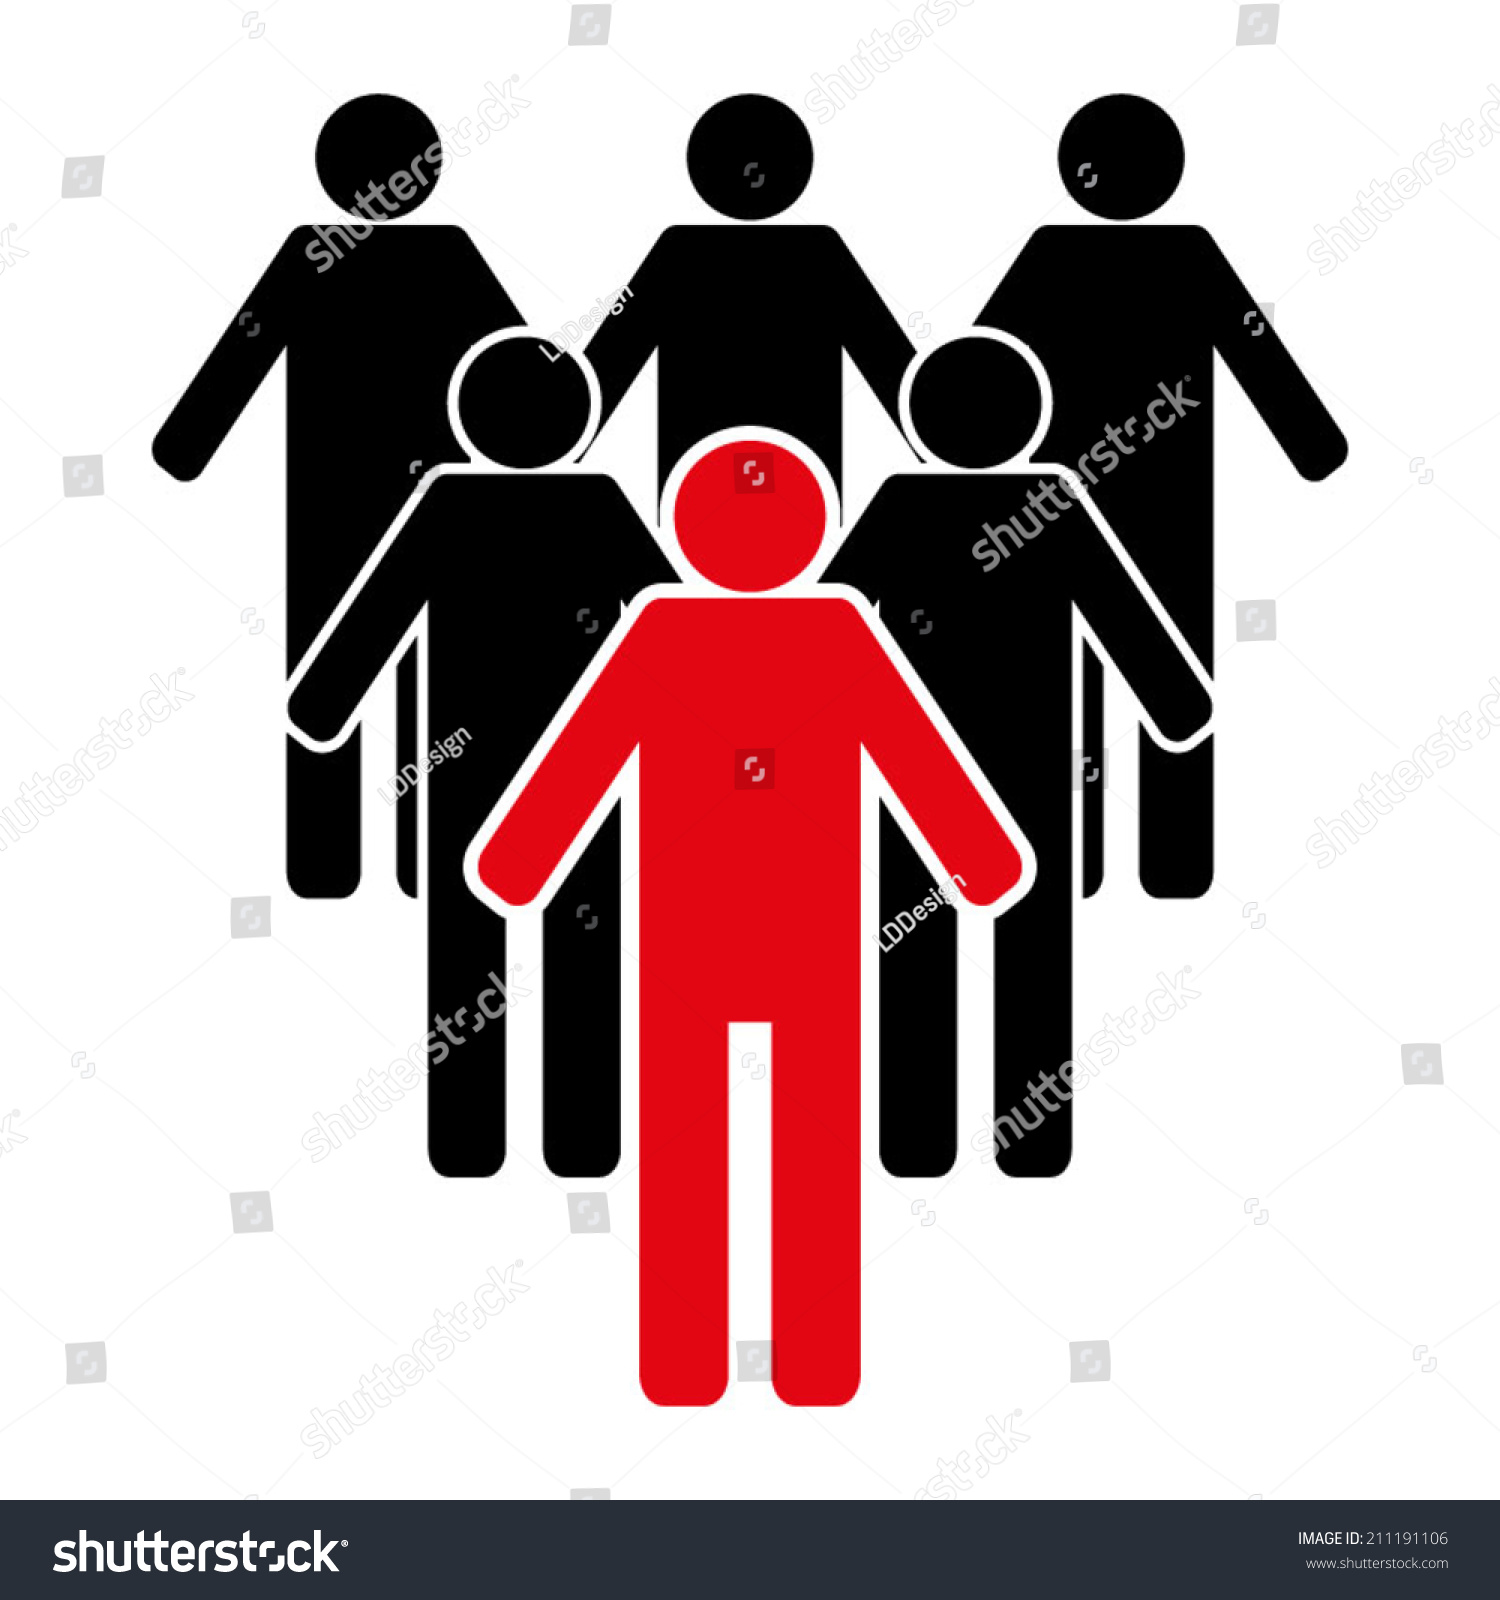 team leader icon stock vector shutterstock team leader icon